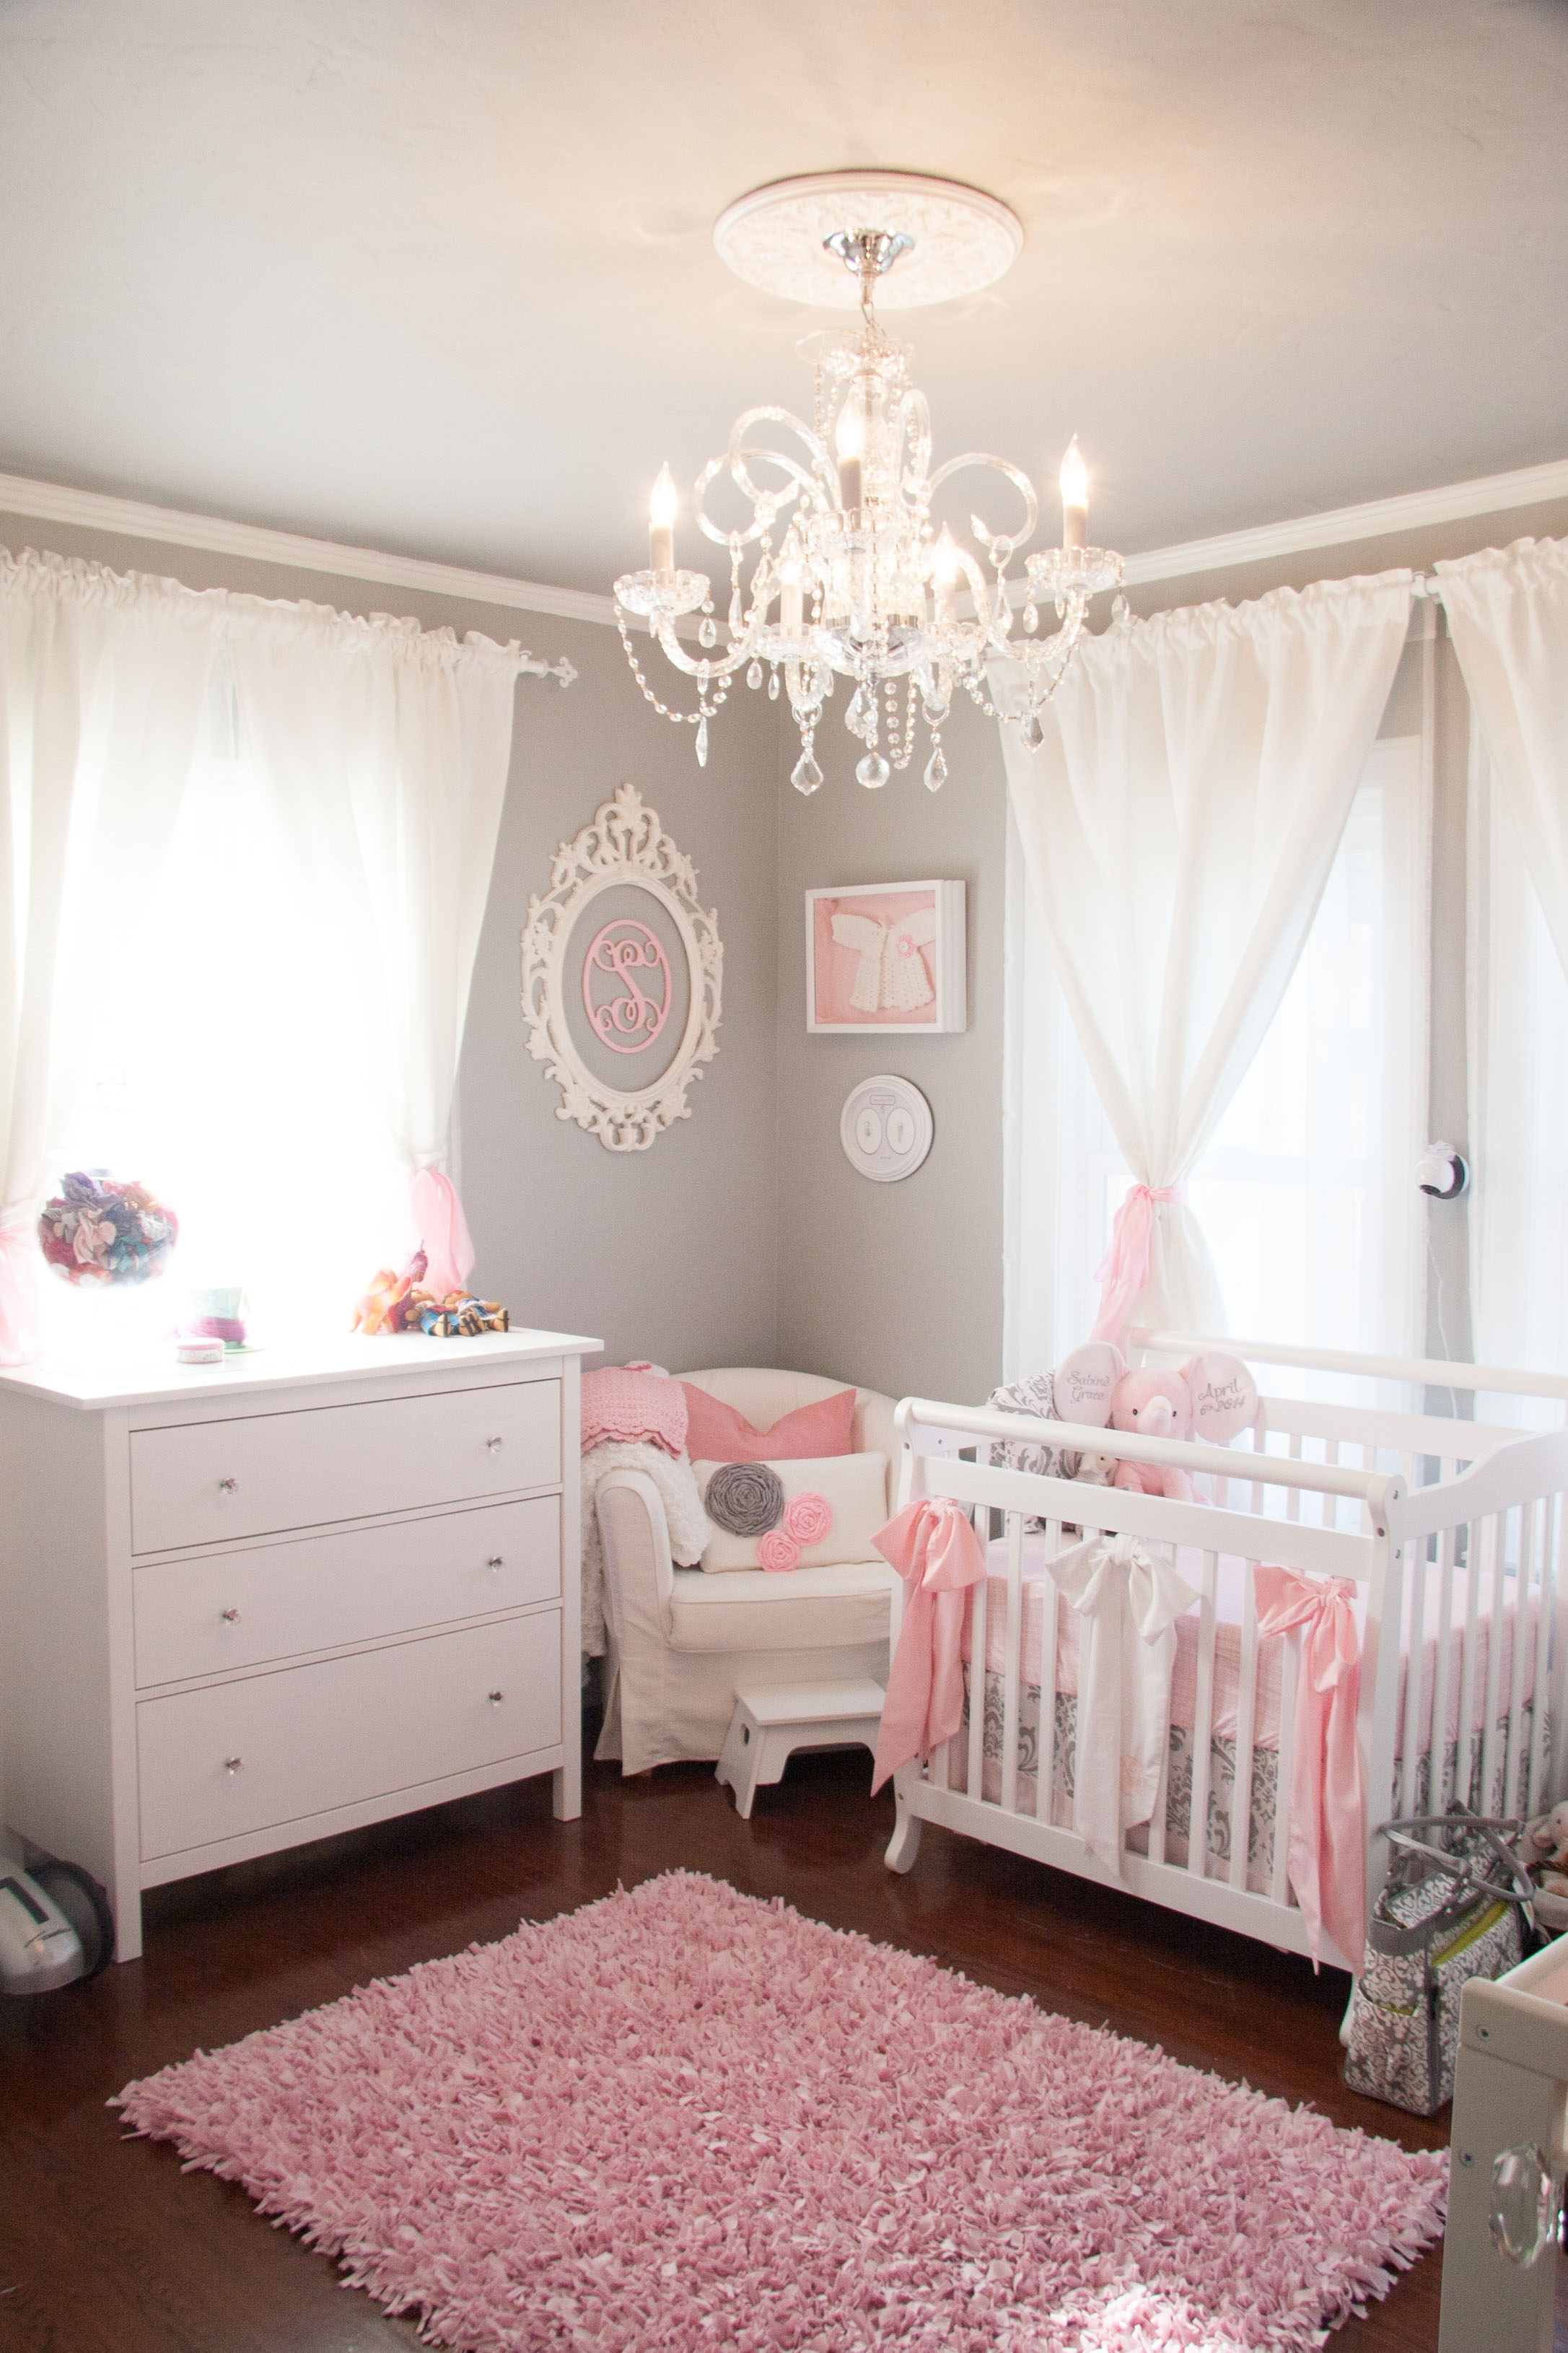 24 ideas of chandeliers for baby girl room chandelier ideas wondrous ba girl room chandelier 64 chandeliers for ba girl with regard to chandeliers for baby aloadofball Choice Image